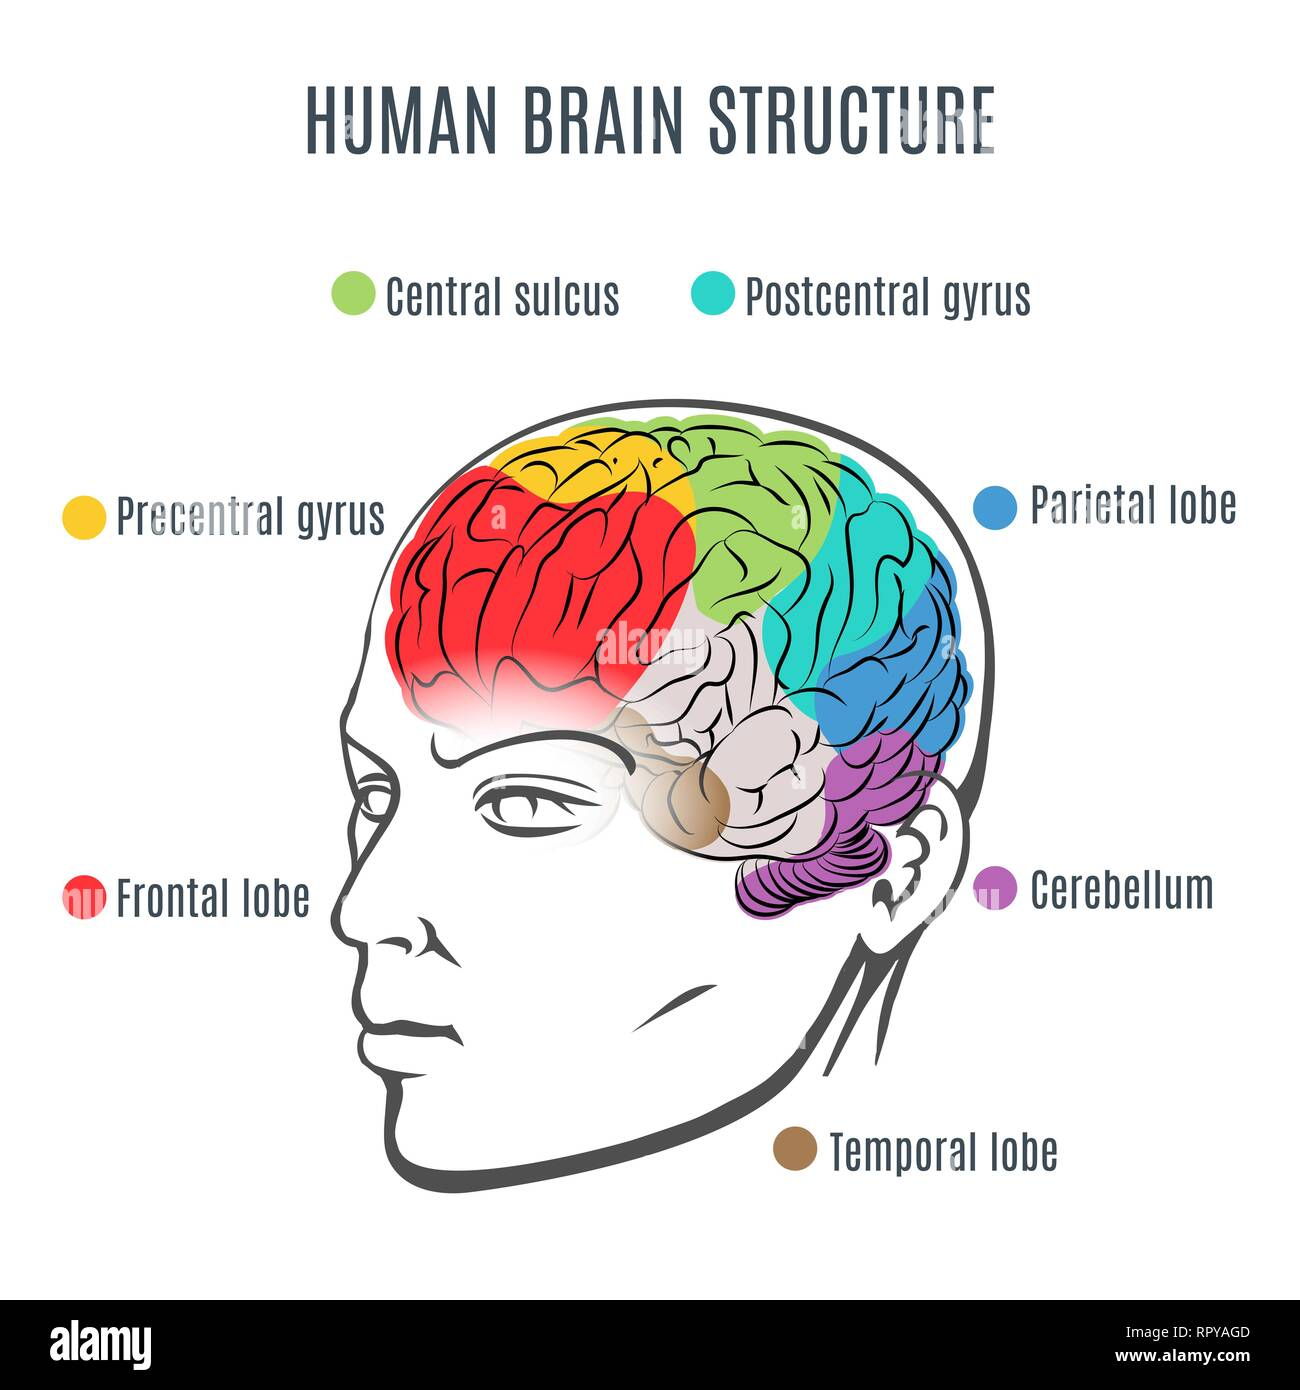 Structure of the human brain. Human head with brain inside. Human brain main parts. Vector illustration. - Stock Image